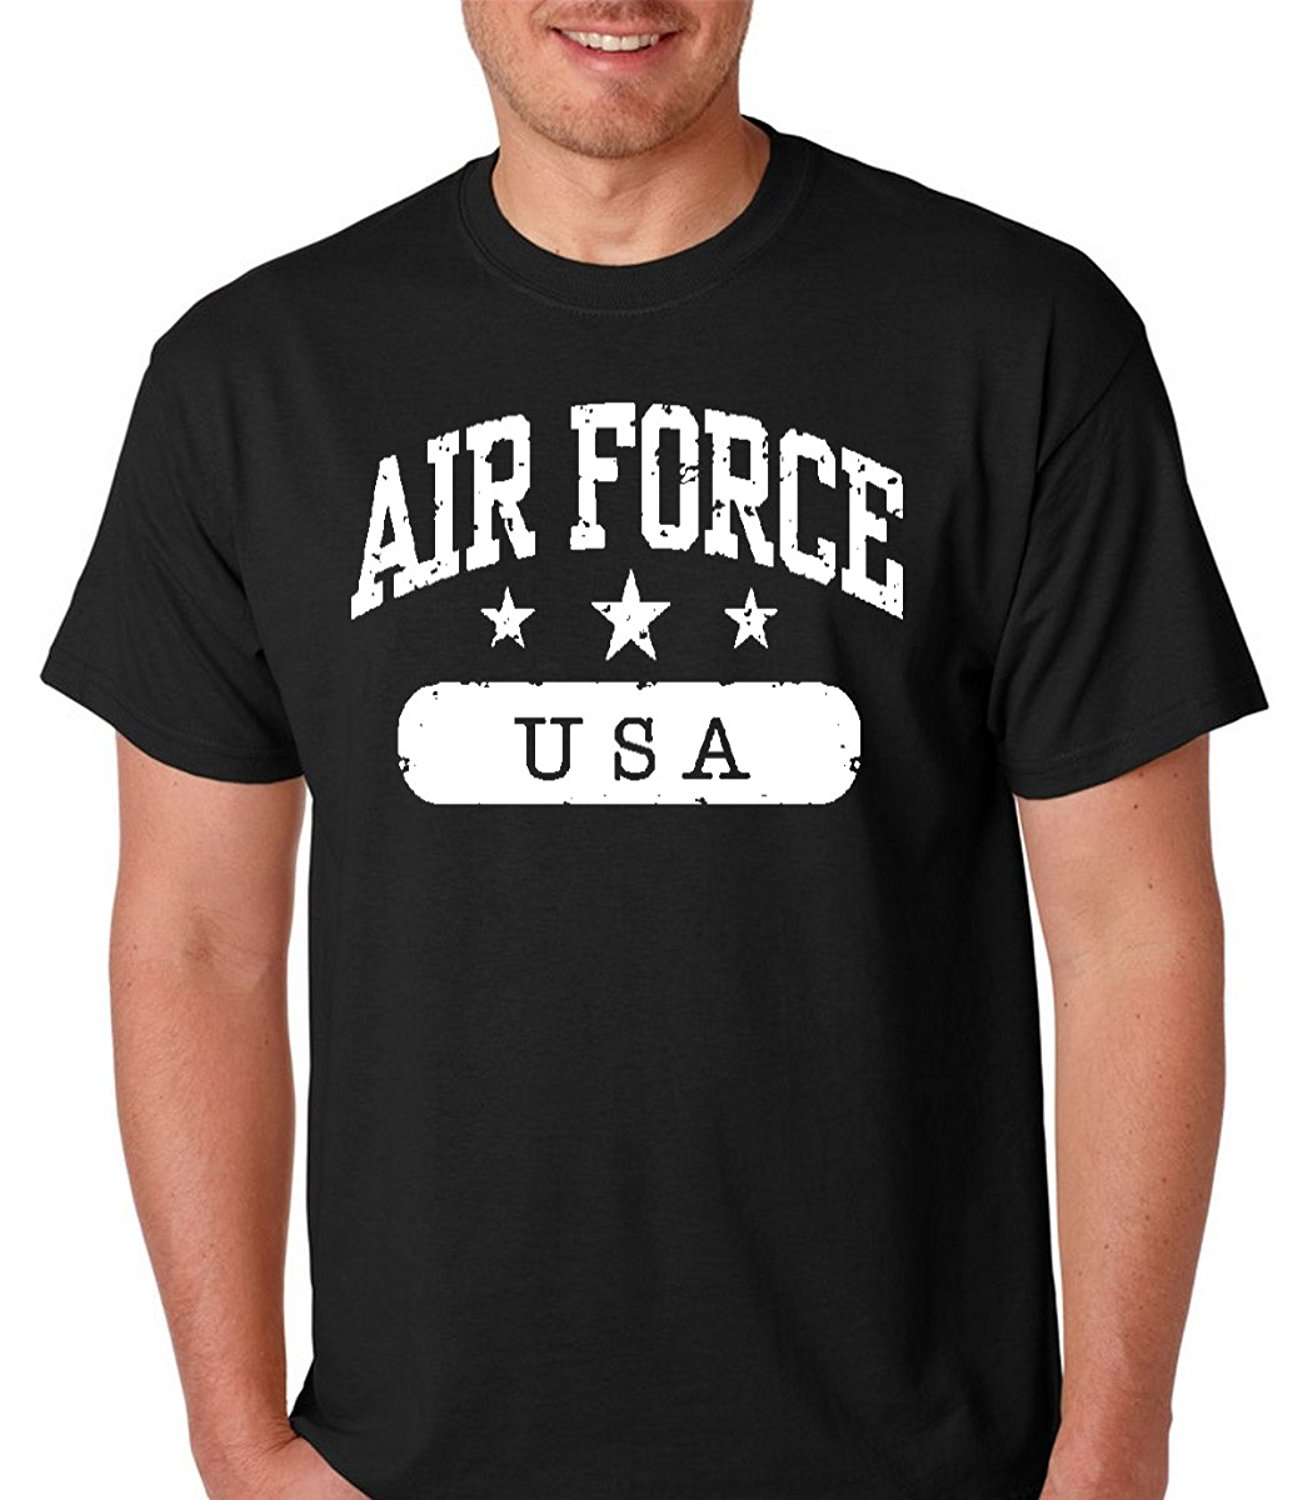 #03 Raw T-Shirts U.S ARMY - PROTECT THE LAND DEFEND THE COUNTRY SINCE 1775 UNITED STATES AMERICAN SOLDIERS Premium Men's T-Shirt